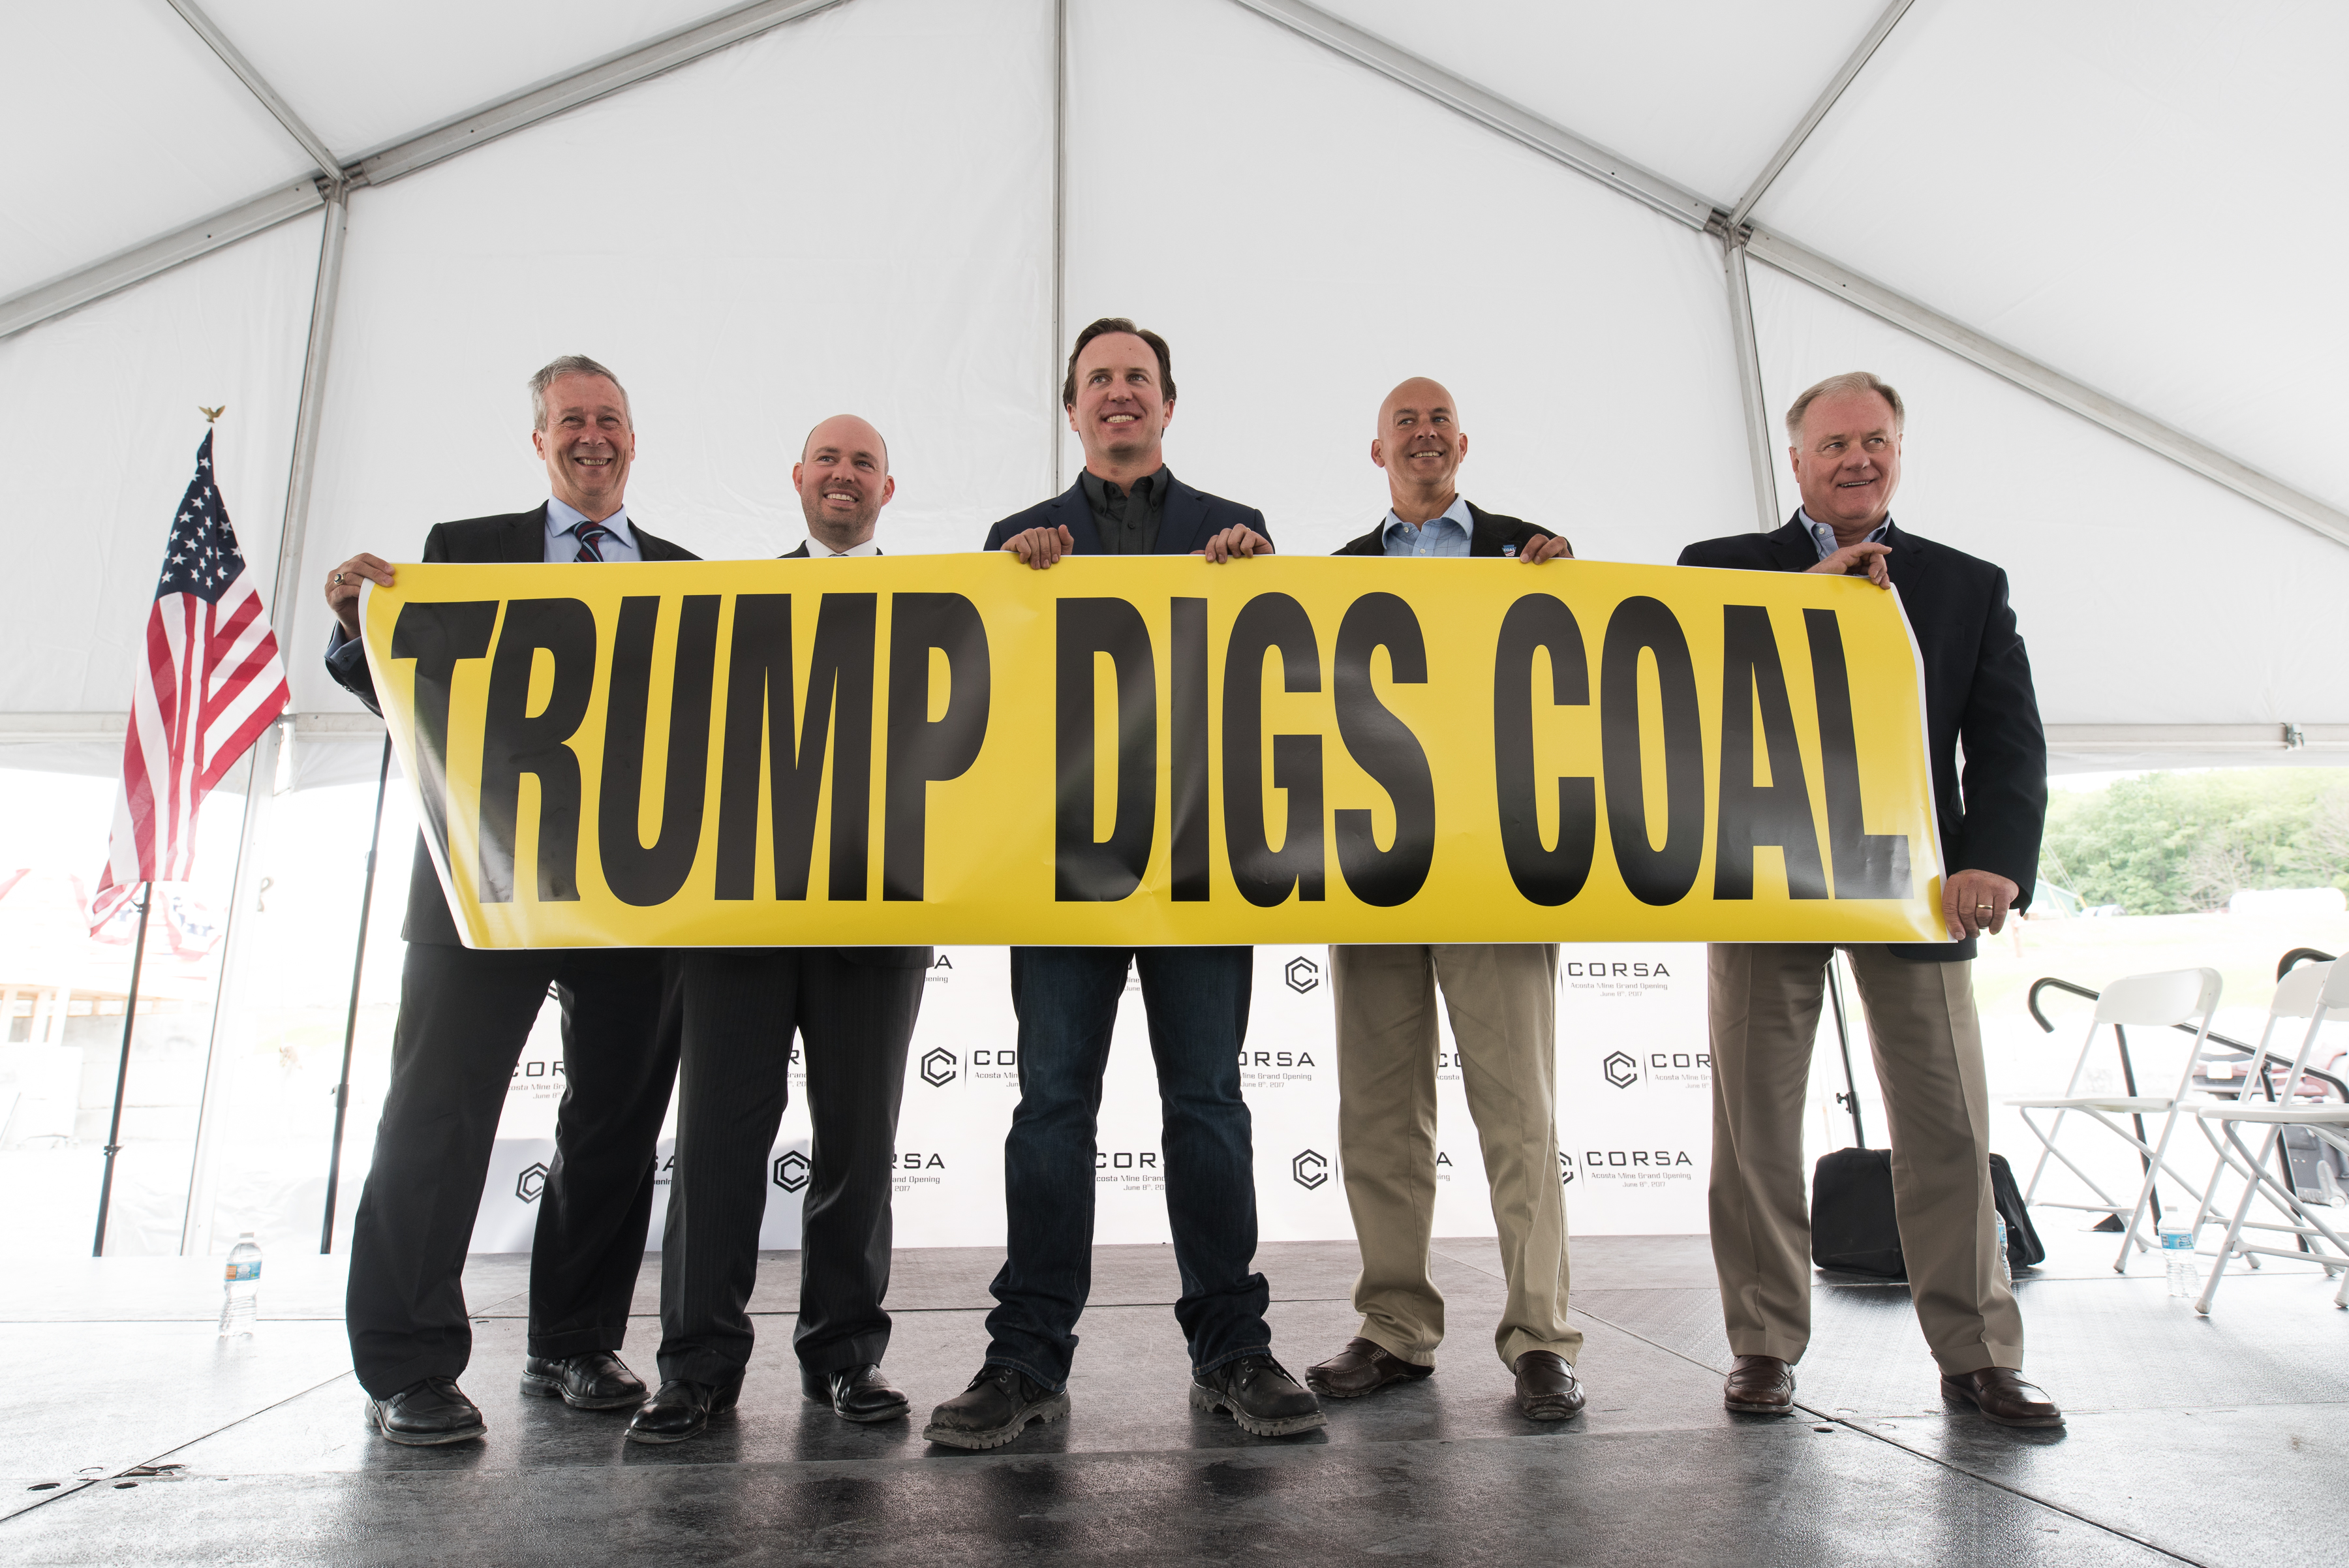 Ron Aldom, executive director of the Somerset County Chamber of Commerce, Carl Metzgar, PA State Representative, George Dethlefsen, CEO Corsa Coal Corp., Pat Stefano, PA State Senator, and Scott Wagner, PA State Senator hold up a  Trump Digs Coal  sign at the grand opening of Corsa Coal's Acosta Deep Mine on June 8 in Pennsylvania.